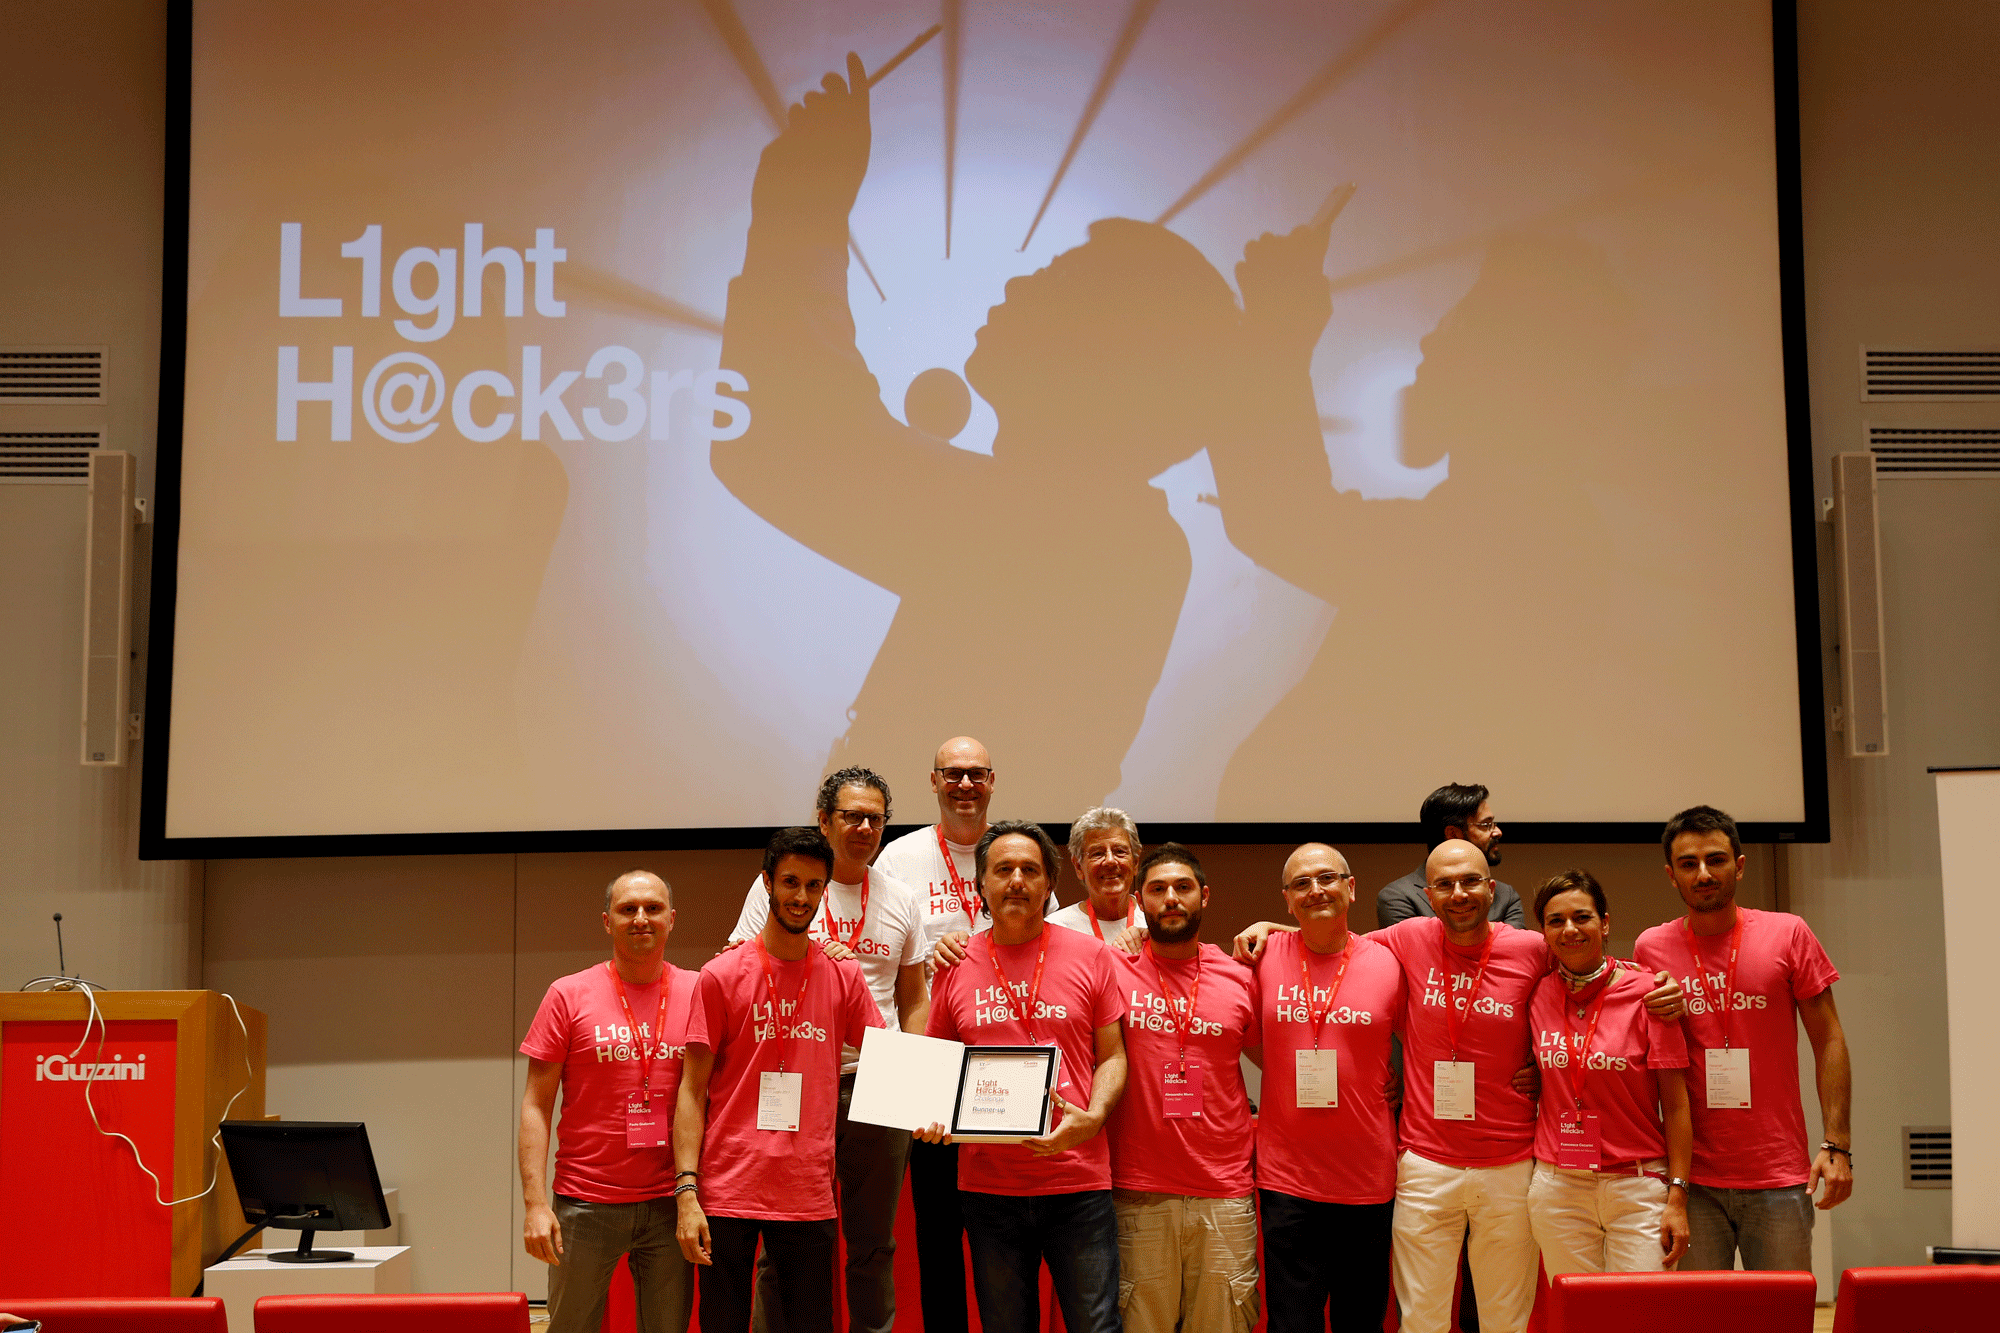 LightHackers, iGuzzini's Hackathon reward innovation